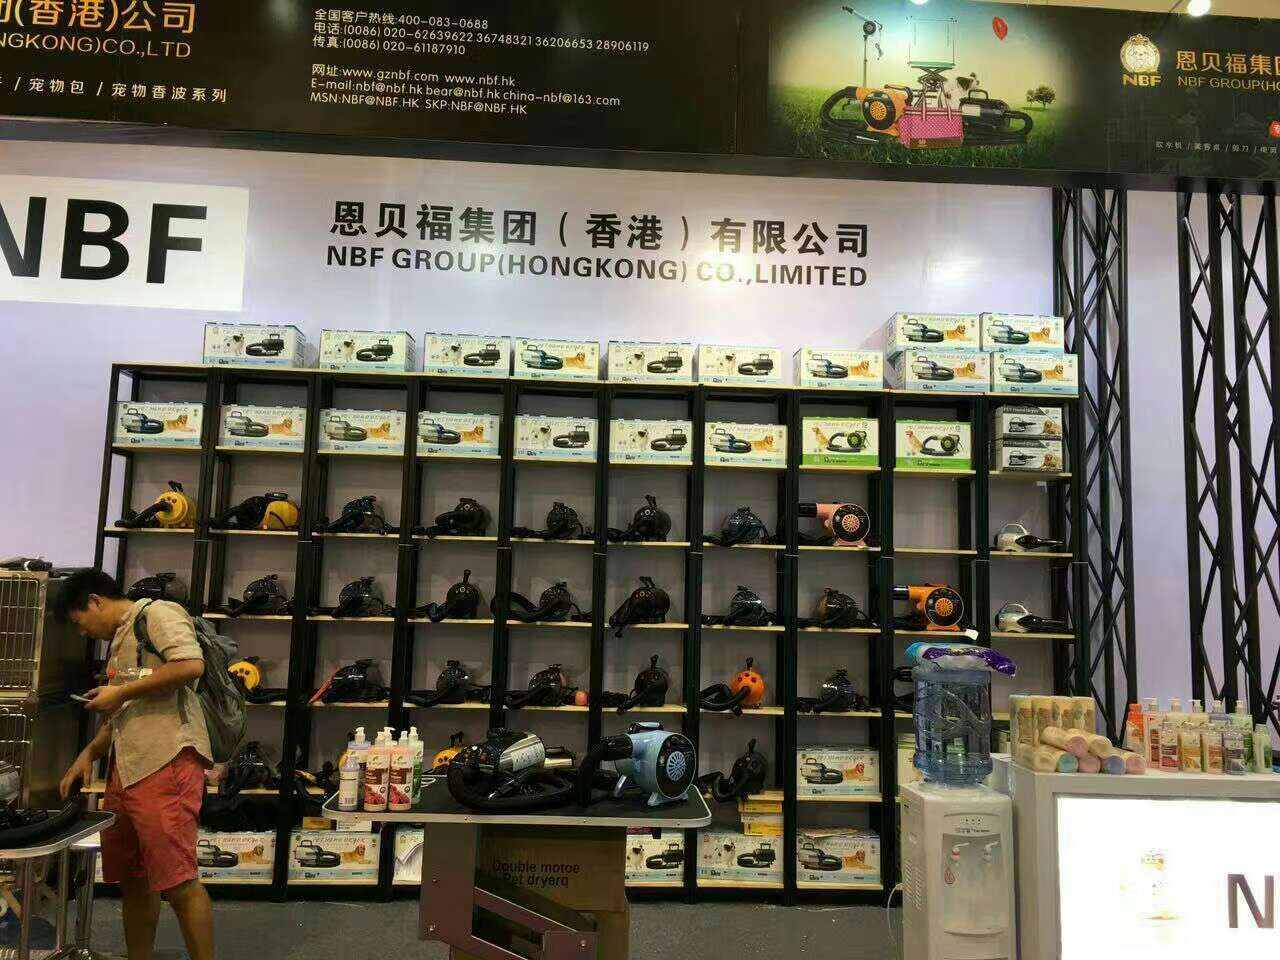 Warmly congratulate Shanghai Asian Beloved Exhibition Enbev Group on its success!